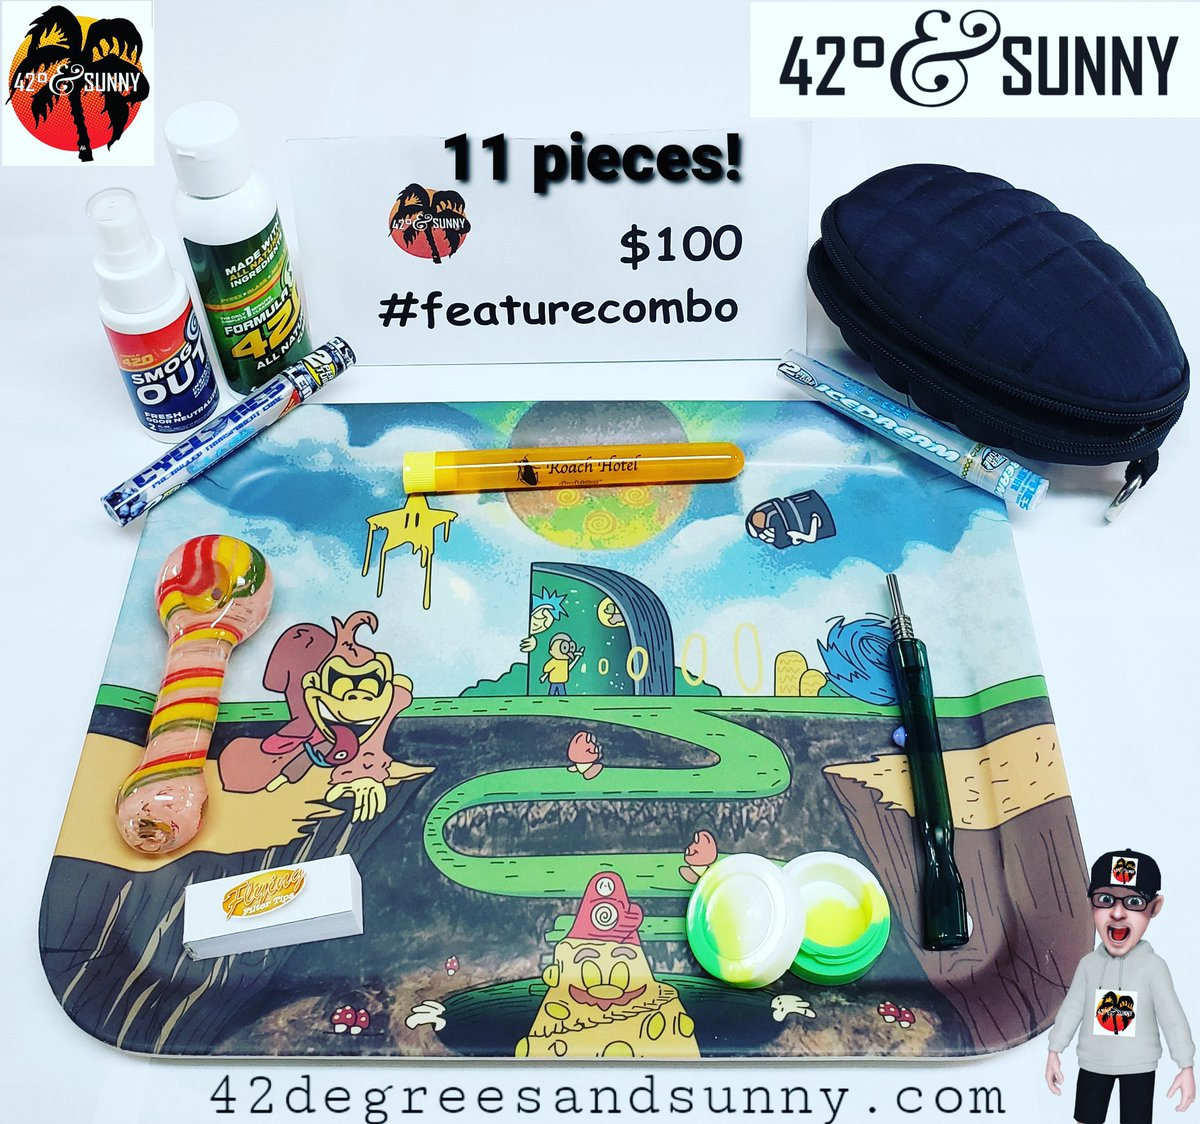 Sunny Sunday #featurecombo! 11 pieces for $100! #formula420 #smogout #biodegradable #rollingtray #grenade #case #nectarcollector #oilslick #spoonpipe #filtertips #doobtube #clearcones x2 #smokingdeals on #smokingaccessories #headshop #headshoplife #420friendly #420andsunny https://t.co/WAtqE45Xgv